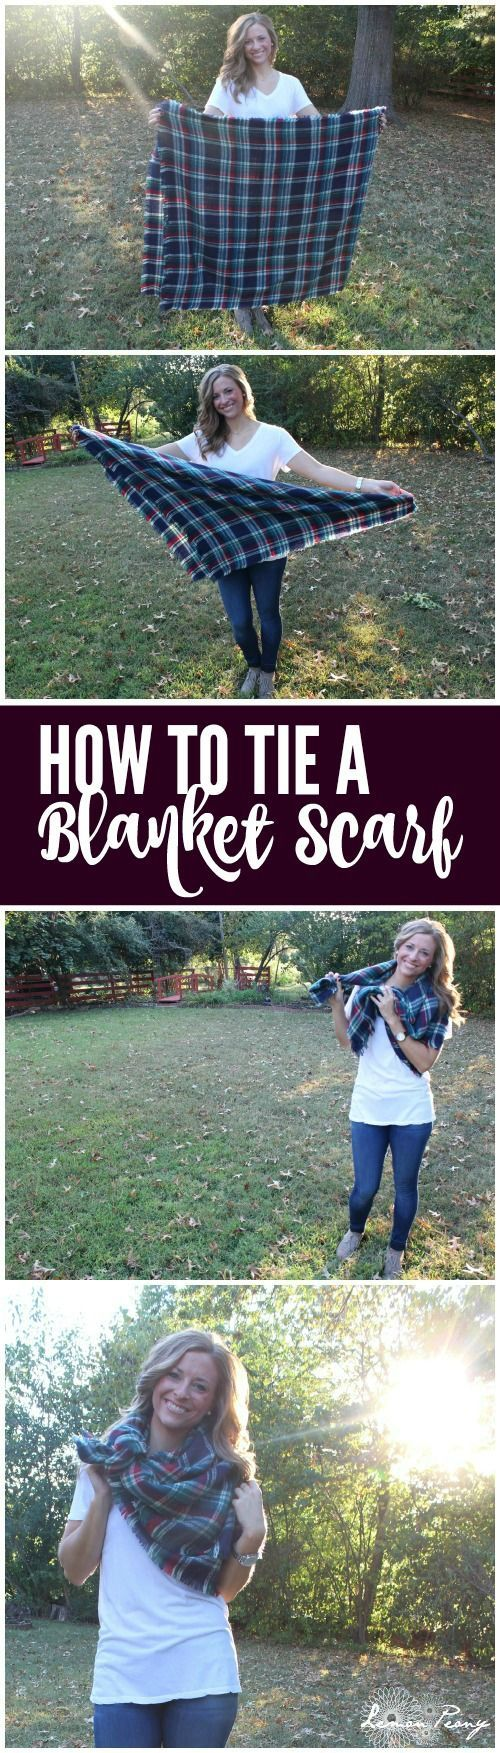 How to Tie a Blanket Scarf for Fall and Winter!! Easy Tutorial for my favorite ways to wear Blanket Scarves!